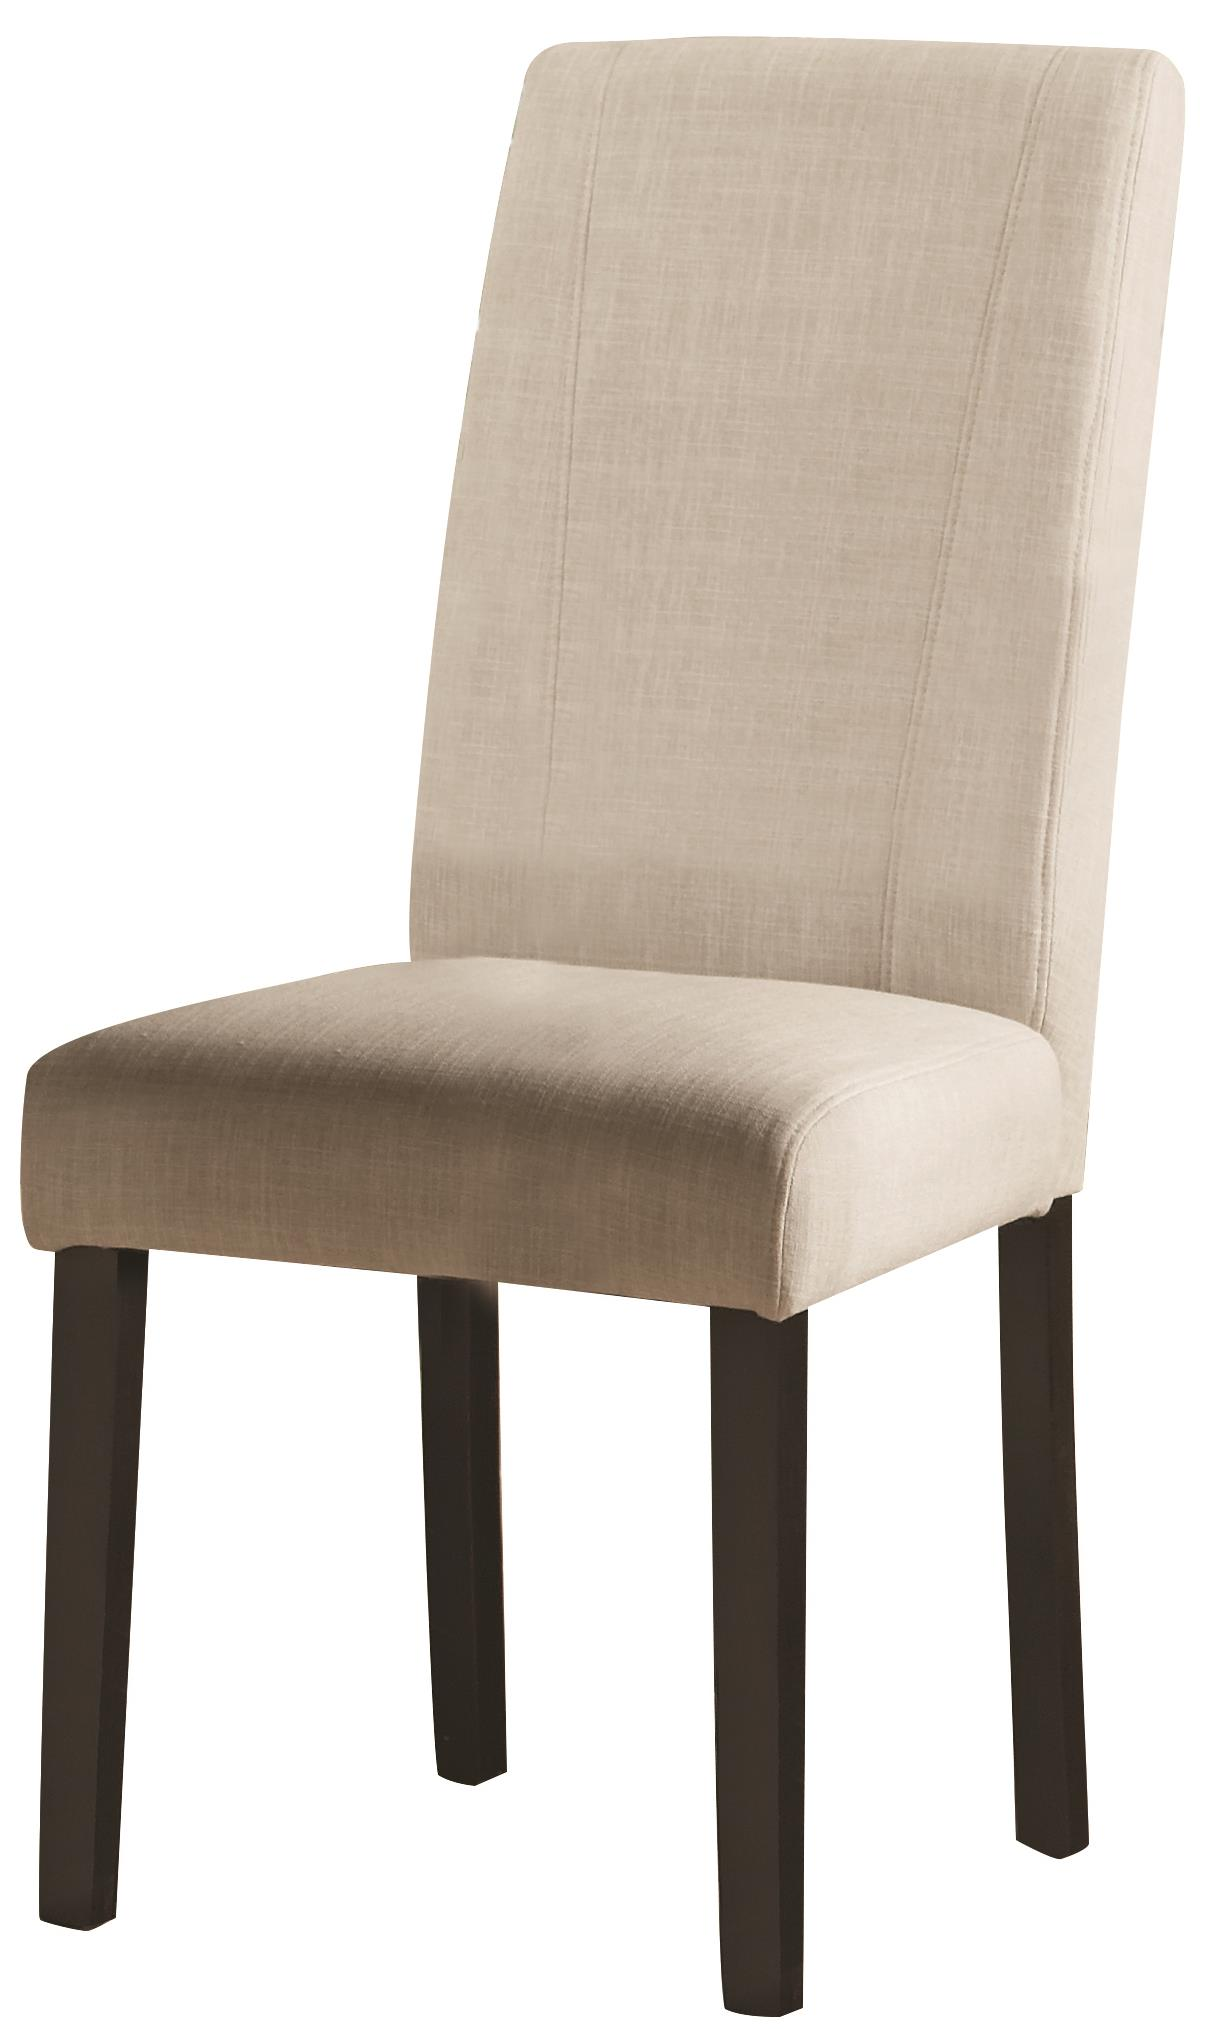 parsons chairs unusual bedroom chair coaster nagel 130061 white fabric side dunk bright